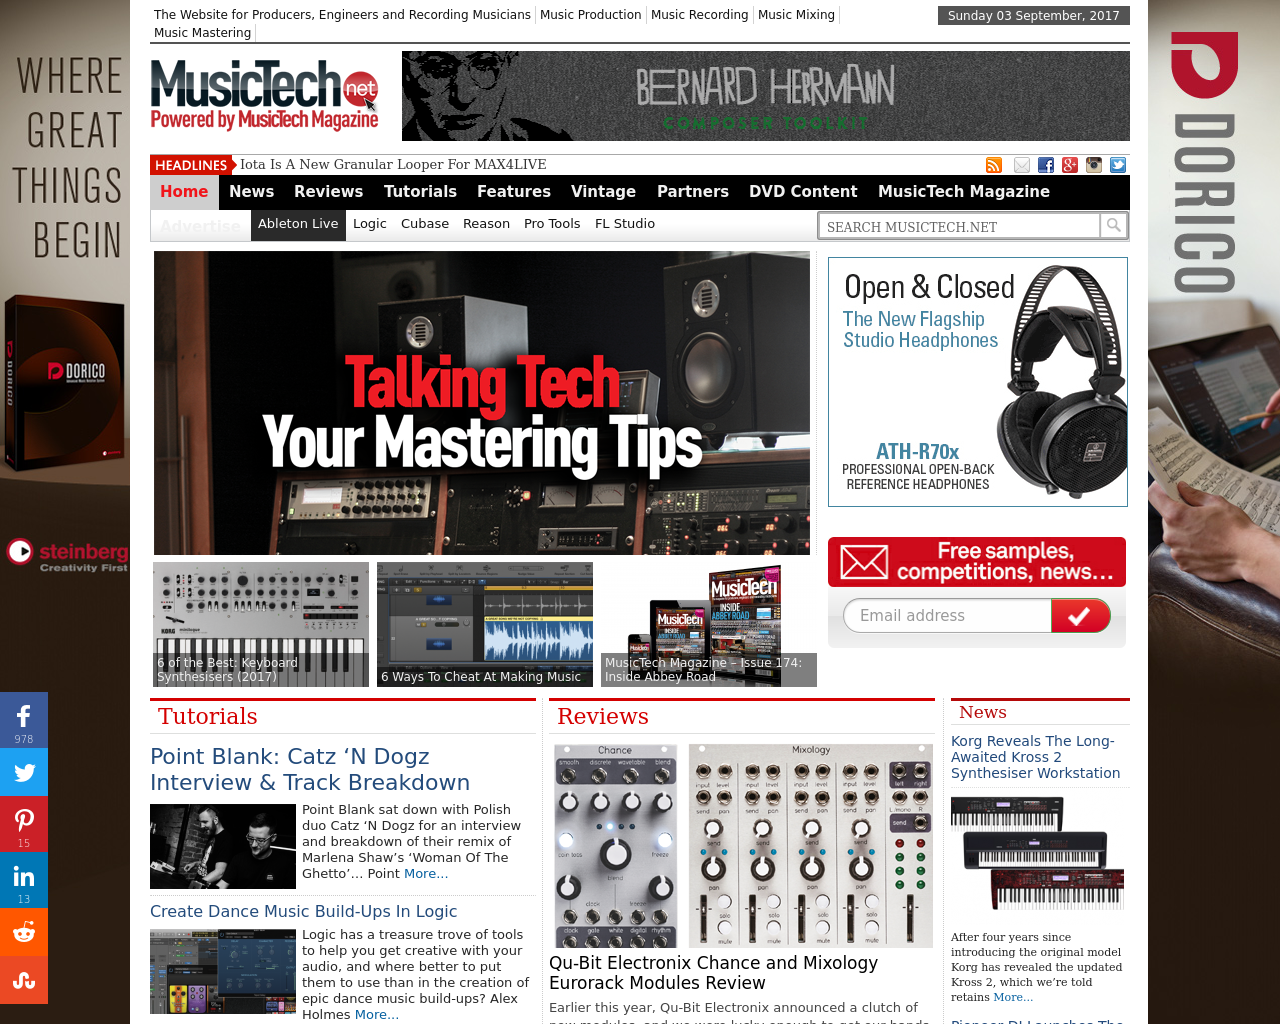 MusicTech-Advertising-Reviews-Pricing